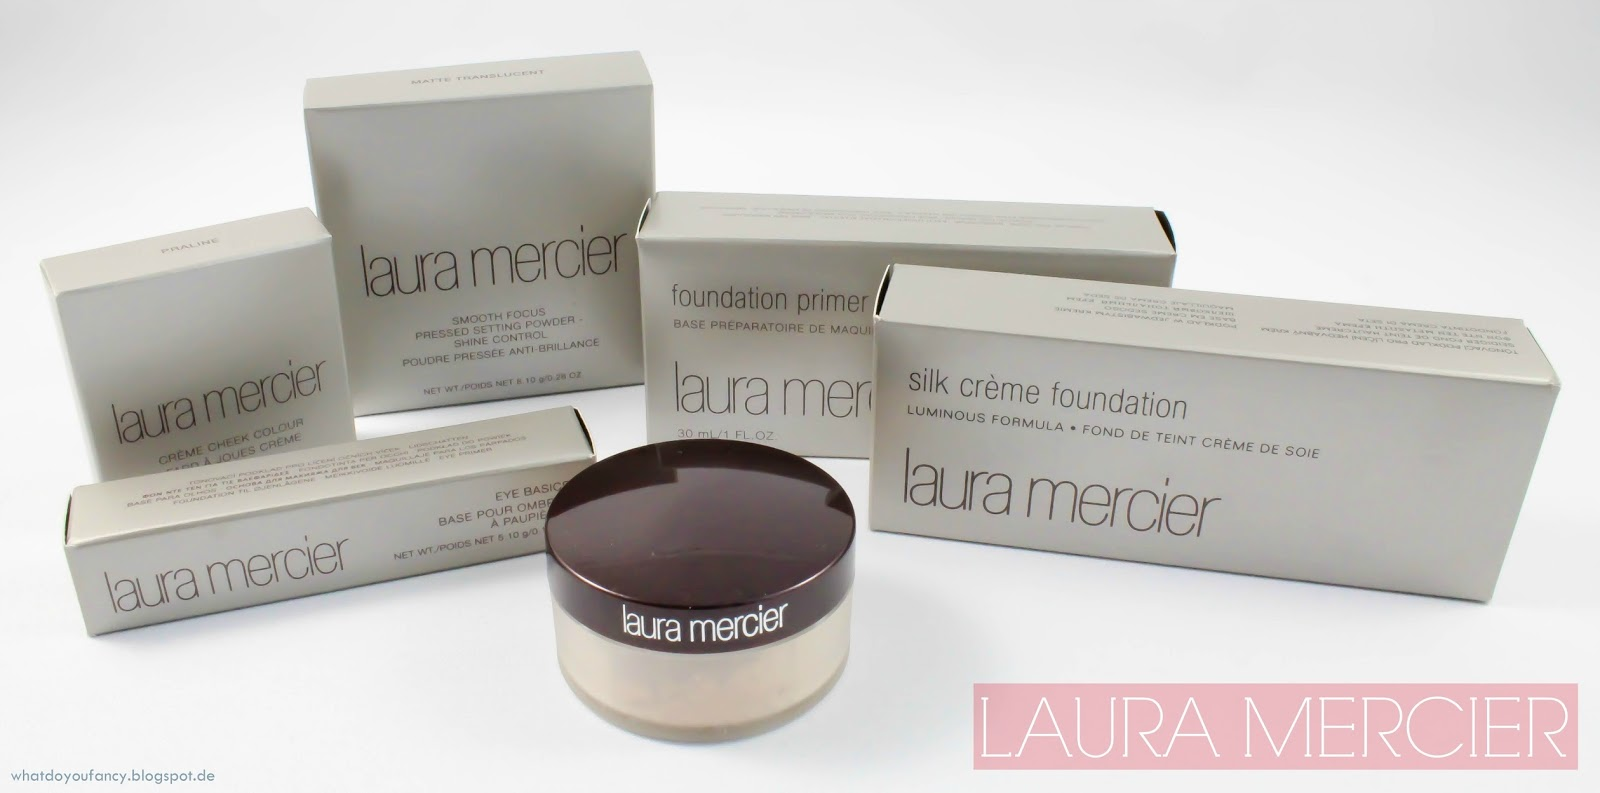 Laura Mercier Foundation Primer, Silk Crème Foundation, Lidschatten-Base, Shine Control-Puder, Crèmerouge und Bronzer